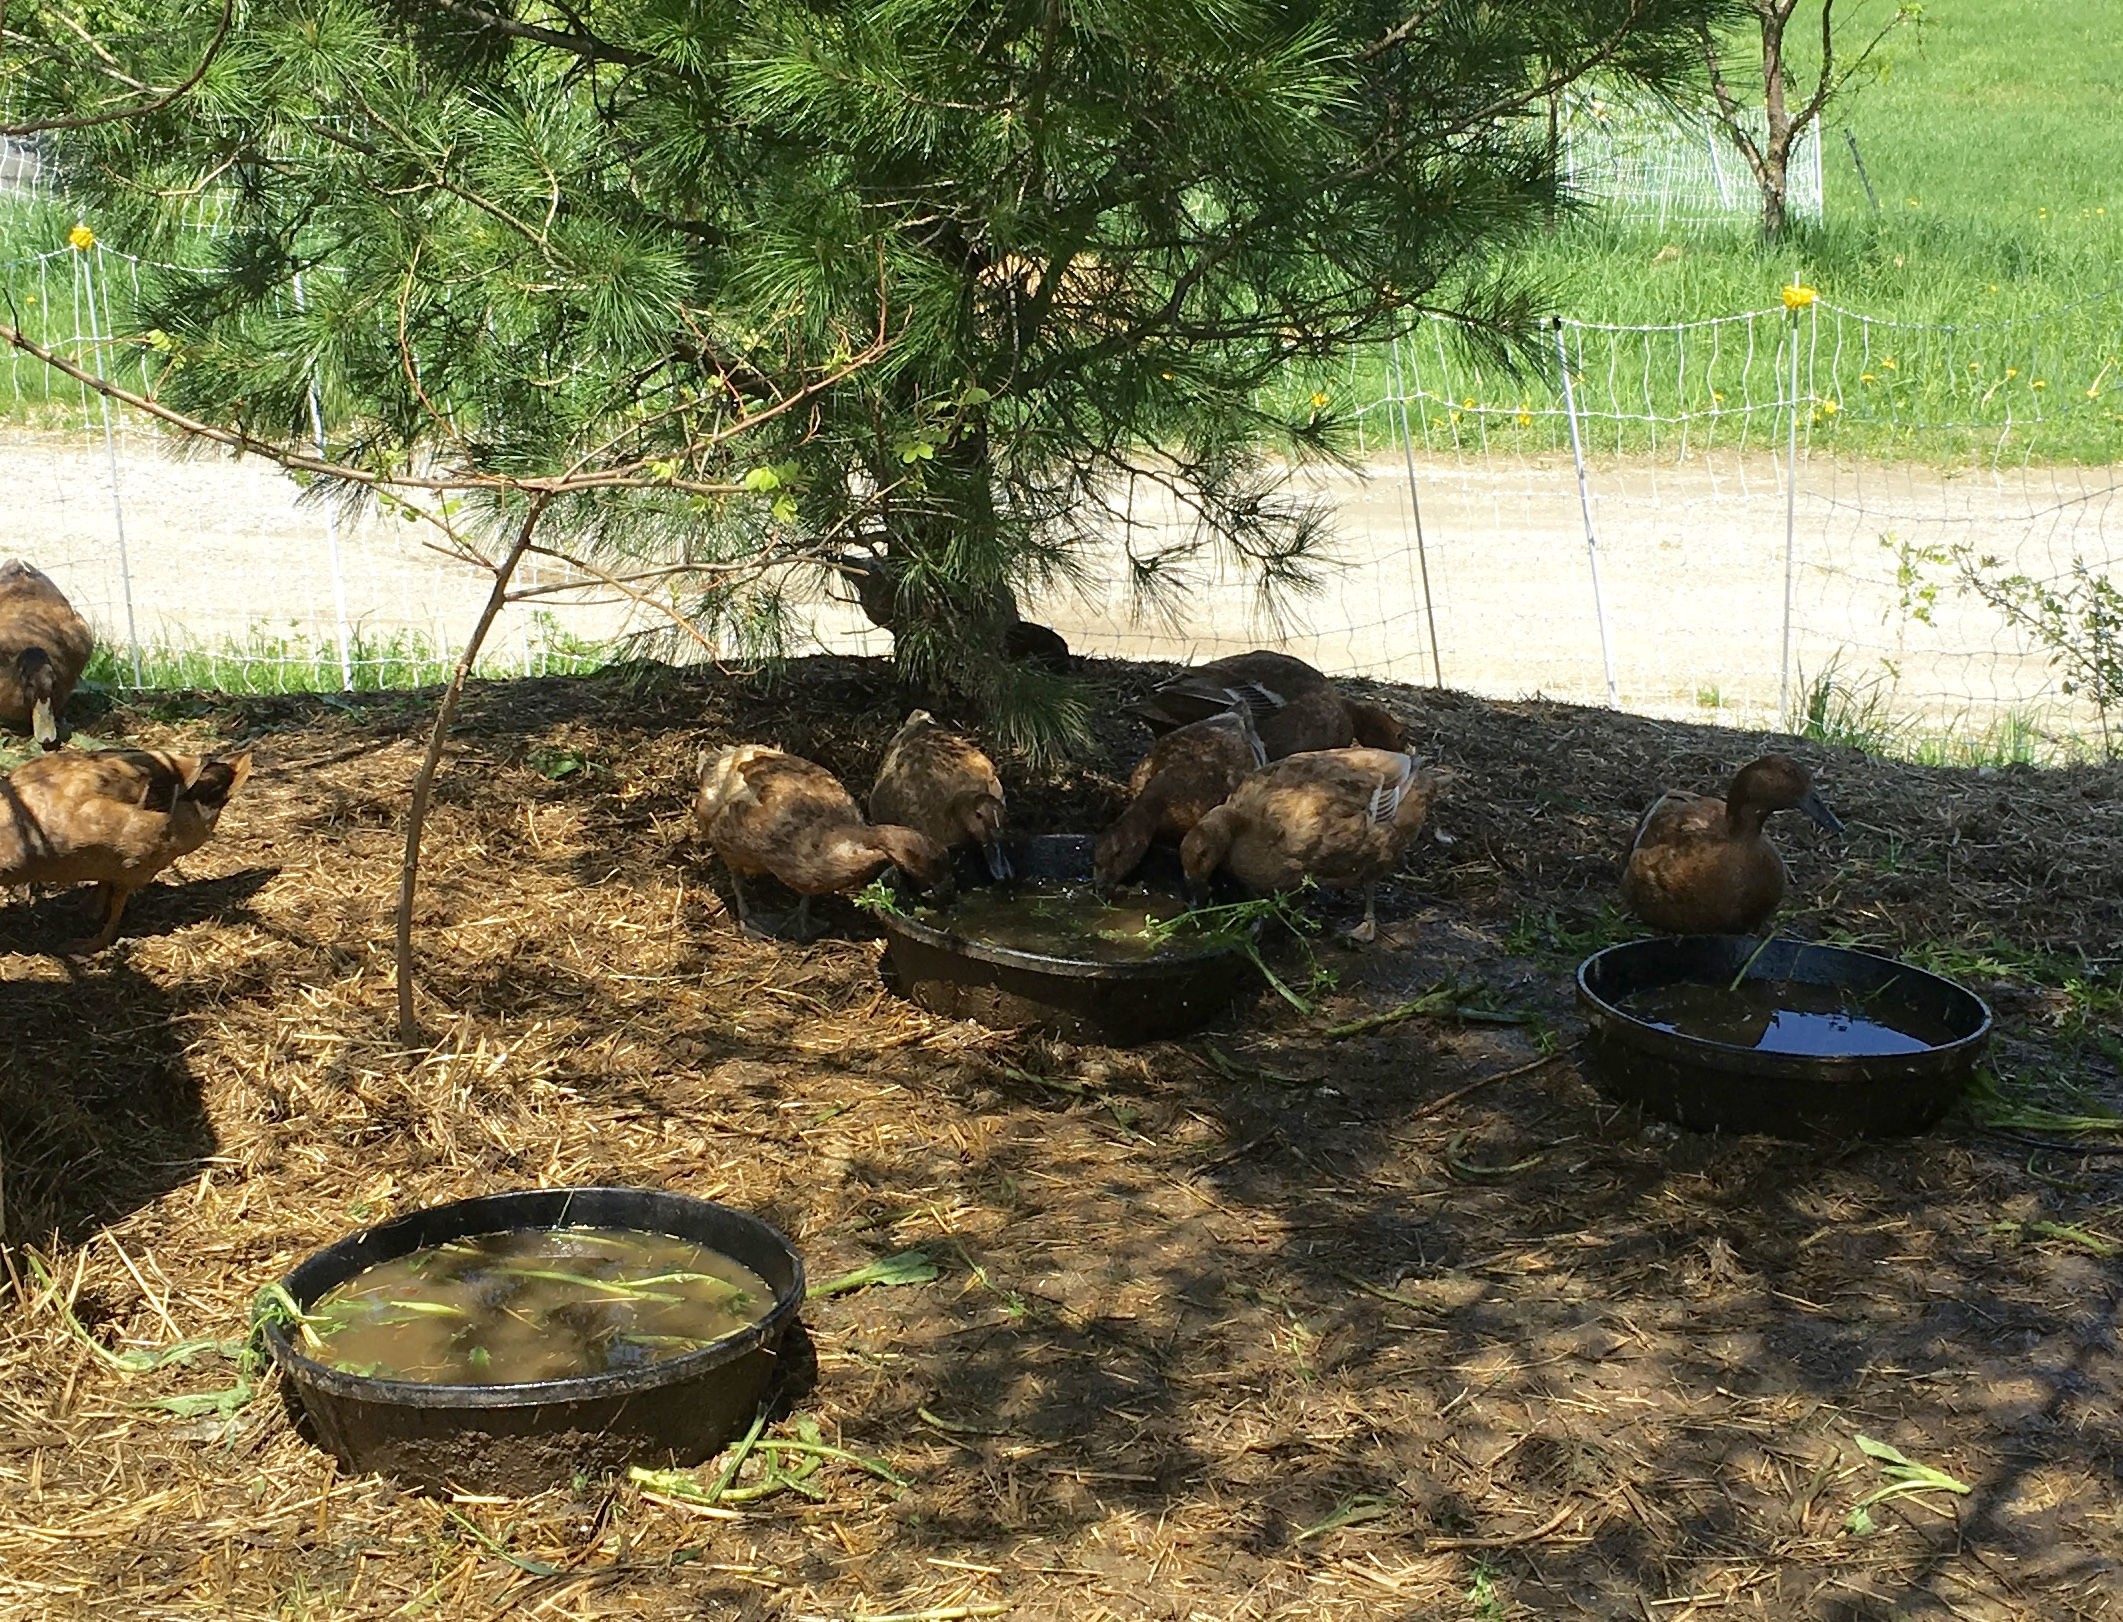 Ducks dip greens in their water bowls and strip the leaves from the bedstraw, leaving only the stems.